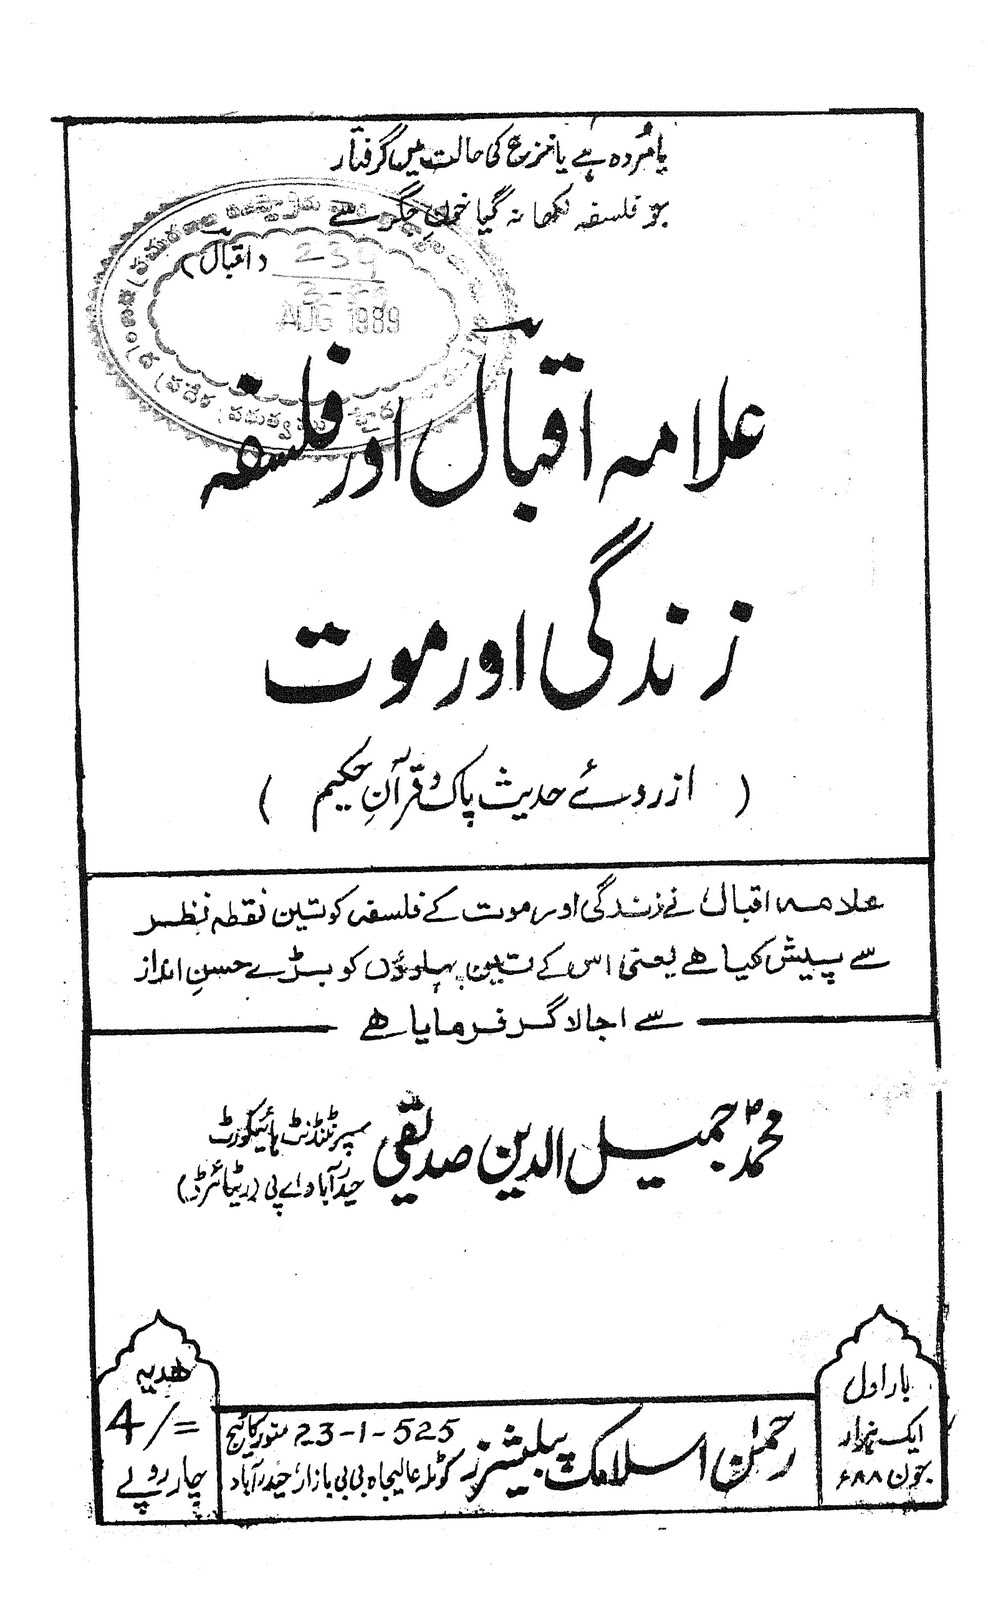 015 Allamaiqbalaurfalsafa Zindagi Aur Maut Urdu Essay Allama Iqbal Dreaded On In For Class 10 With Poetry Ka Shaheen Headings And Full